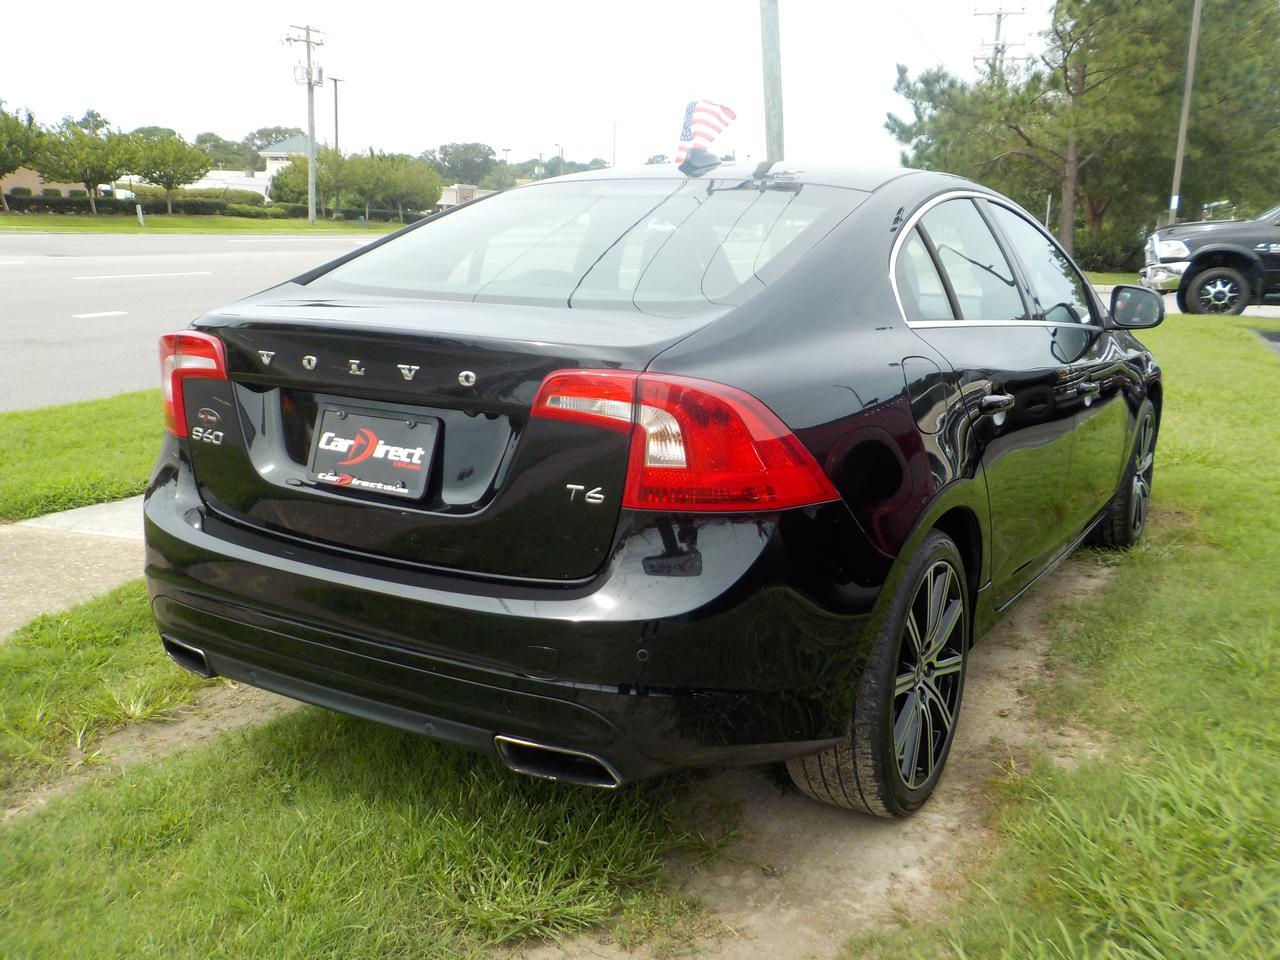 2015 VOLVO S60 PREMIER PLUS, LEATHER, BACKUP CAM, PARKING SENSORS, BLUETOOTH, SUNROOF, KEYLESS START, 1 OWNER! Virginia Beach VA